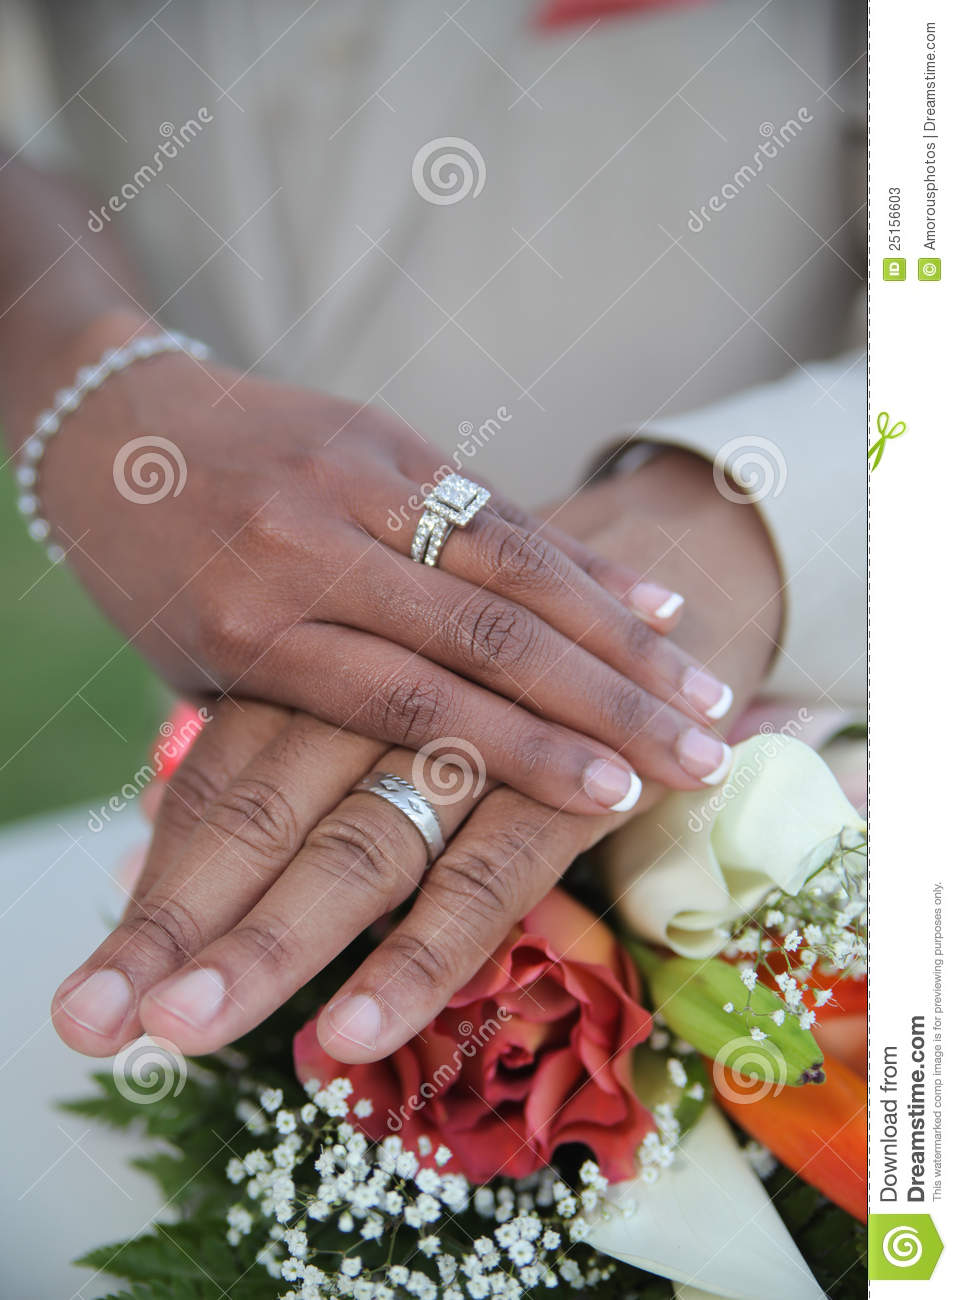 Newlywed couple holding hands over top of wedding flower bouquet